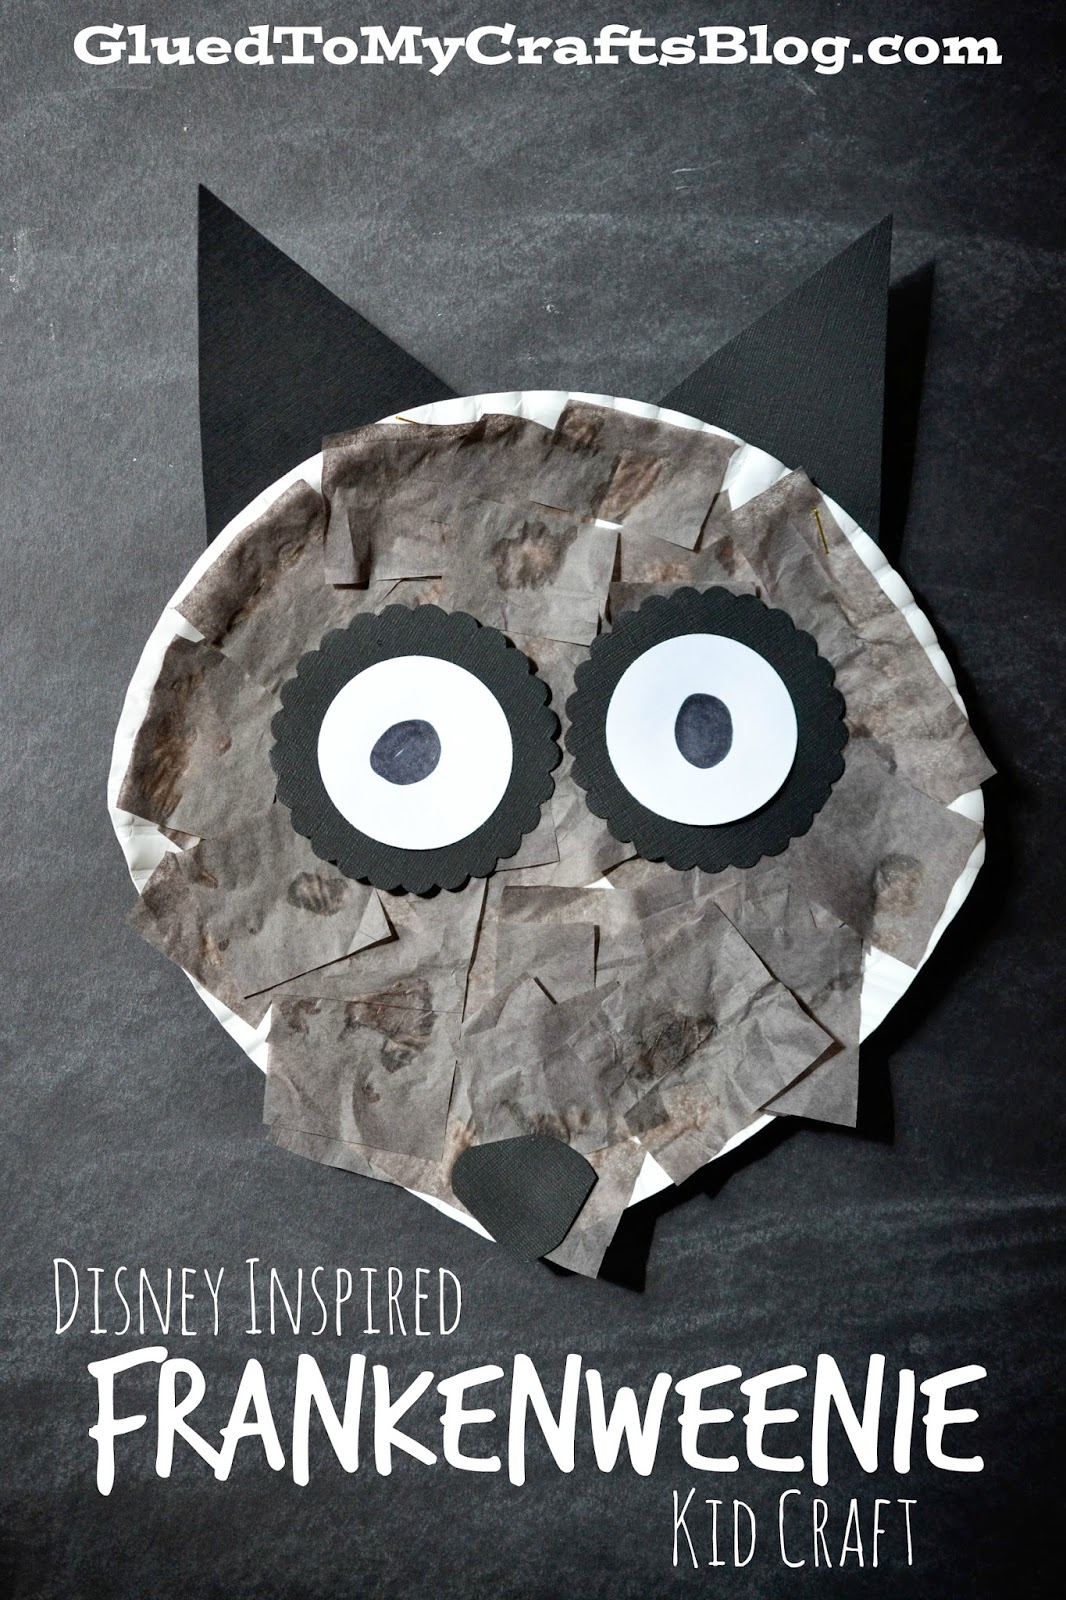 Disney Inspired Frankenweenie Kid Craft